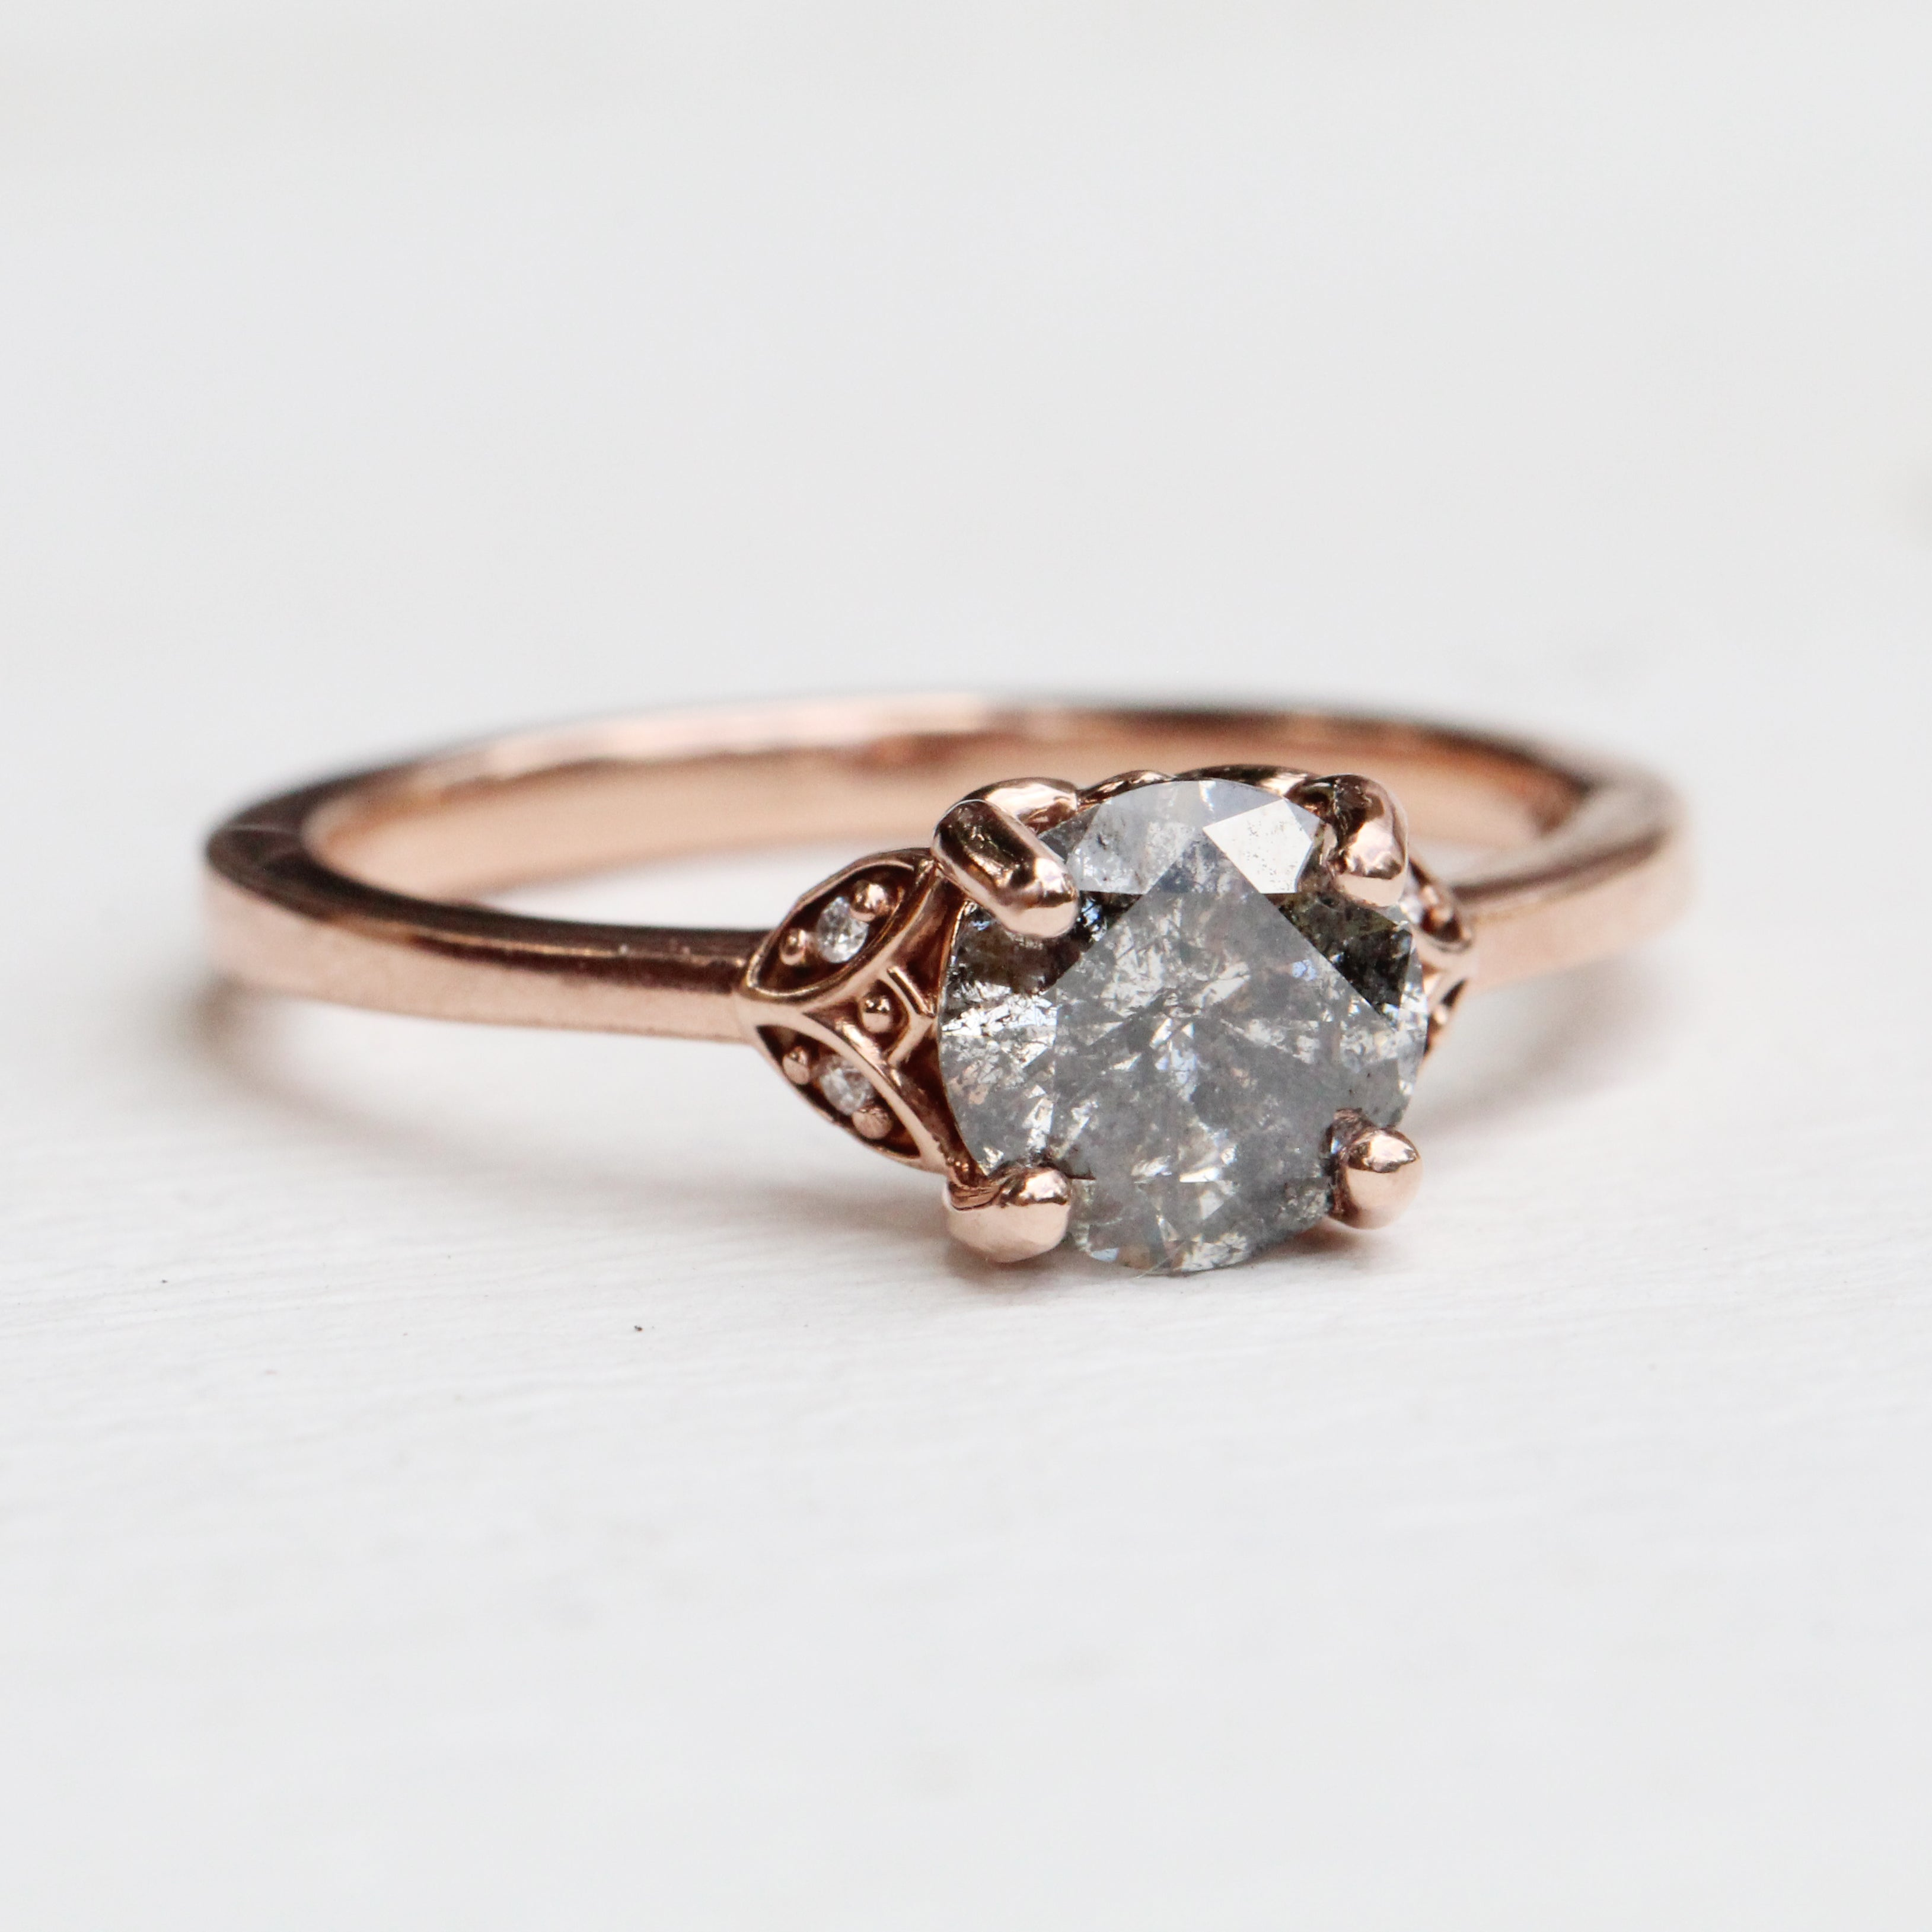 Cecelia Ring with 1.12 Carat Celestial Diamond in 10k Rose Gold - Ready to Size and Ship - Salt & Pepper Celestial Diamond Engagement Rings and Wedding Bands  by Midwinter Co.